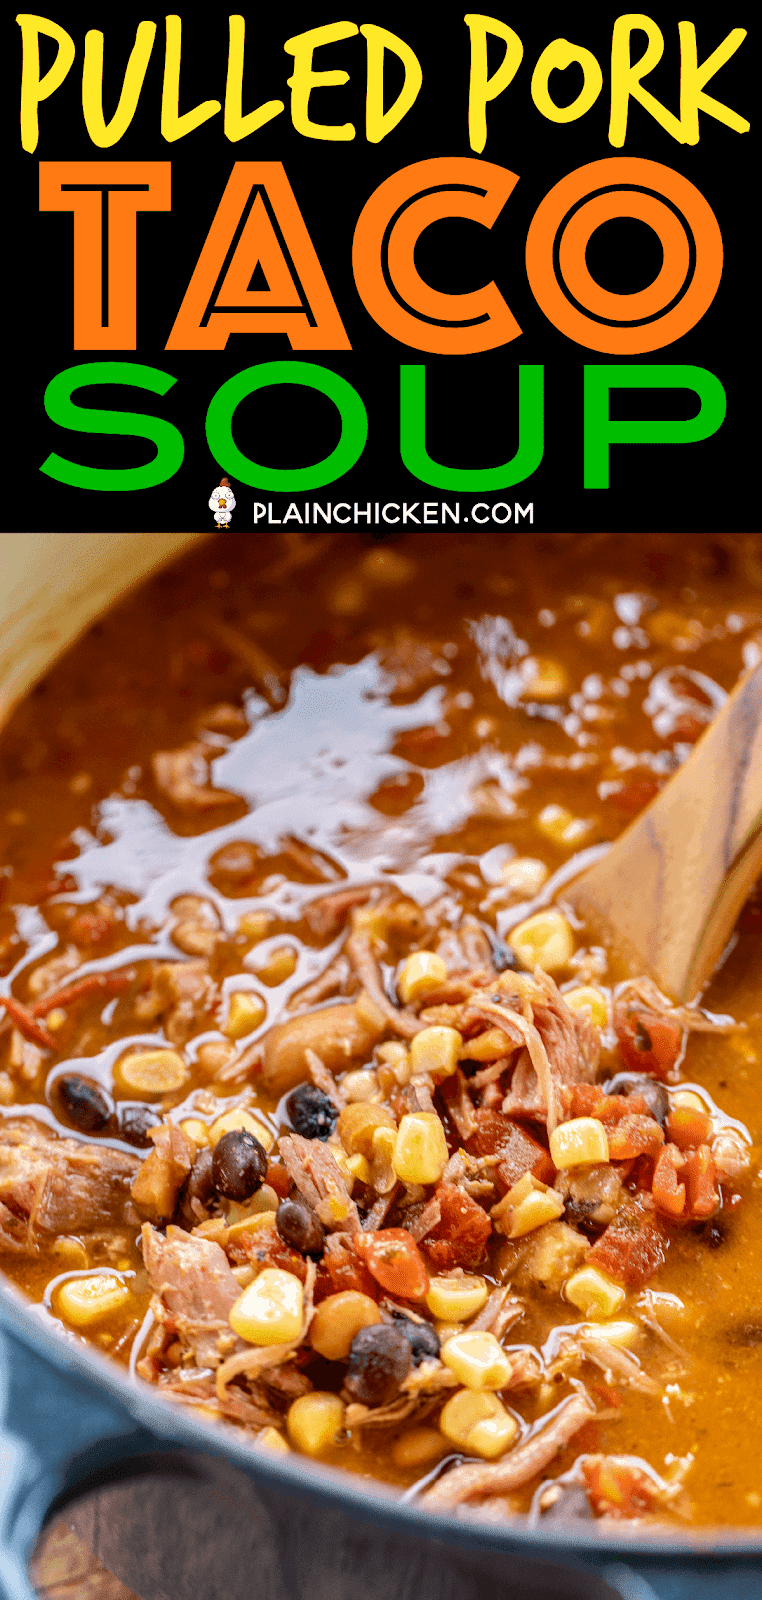 Pulled Pork Taco Soup - the BEST taco soup EVER!!! Pulled pork, pinto beans, black beans, diced tomatoes and green chiles, corn, taco seasoning, ranch seasoning, chicken broth. SO easy to make. Just dump everything in the pot, bring to a boil and simmer. Can also make in the #slowcooker. Great for tailgating and potlucks. Can freeze leftovers for a quick meal later. Our favorite taco soup recipe! #soup #taco #pulledpork